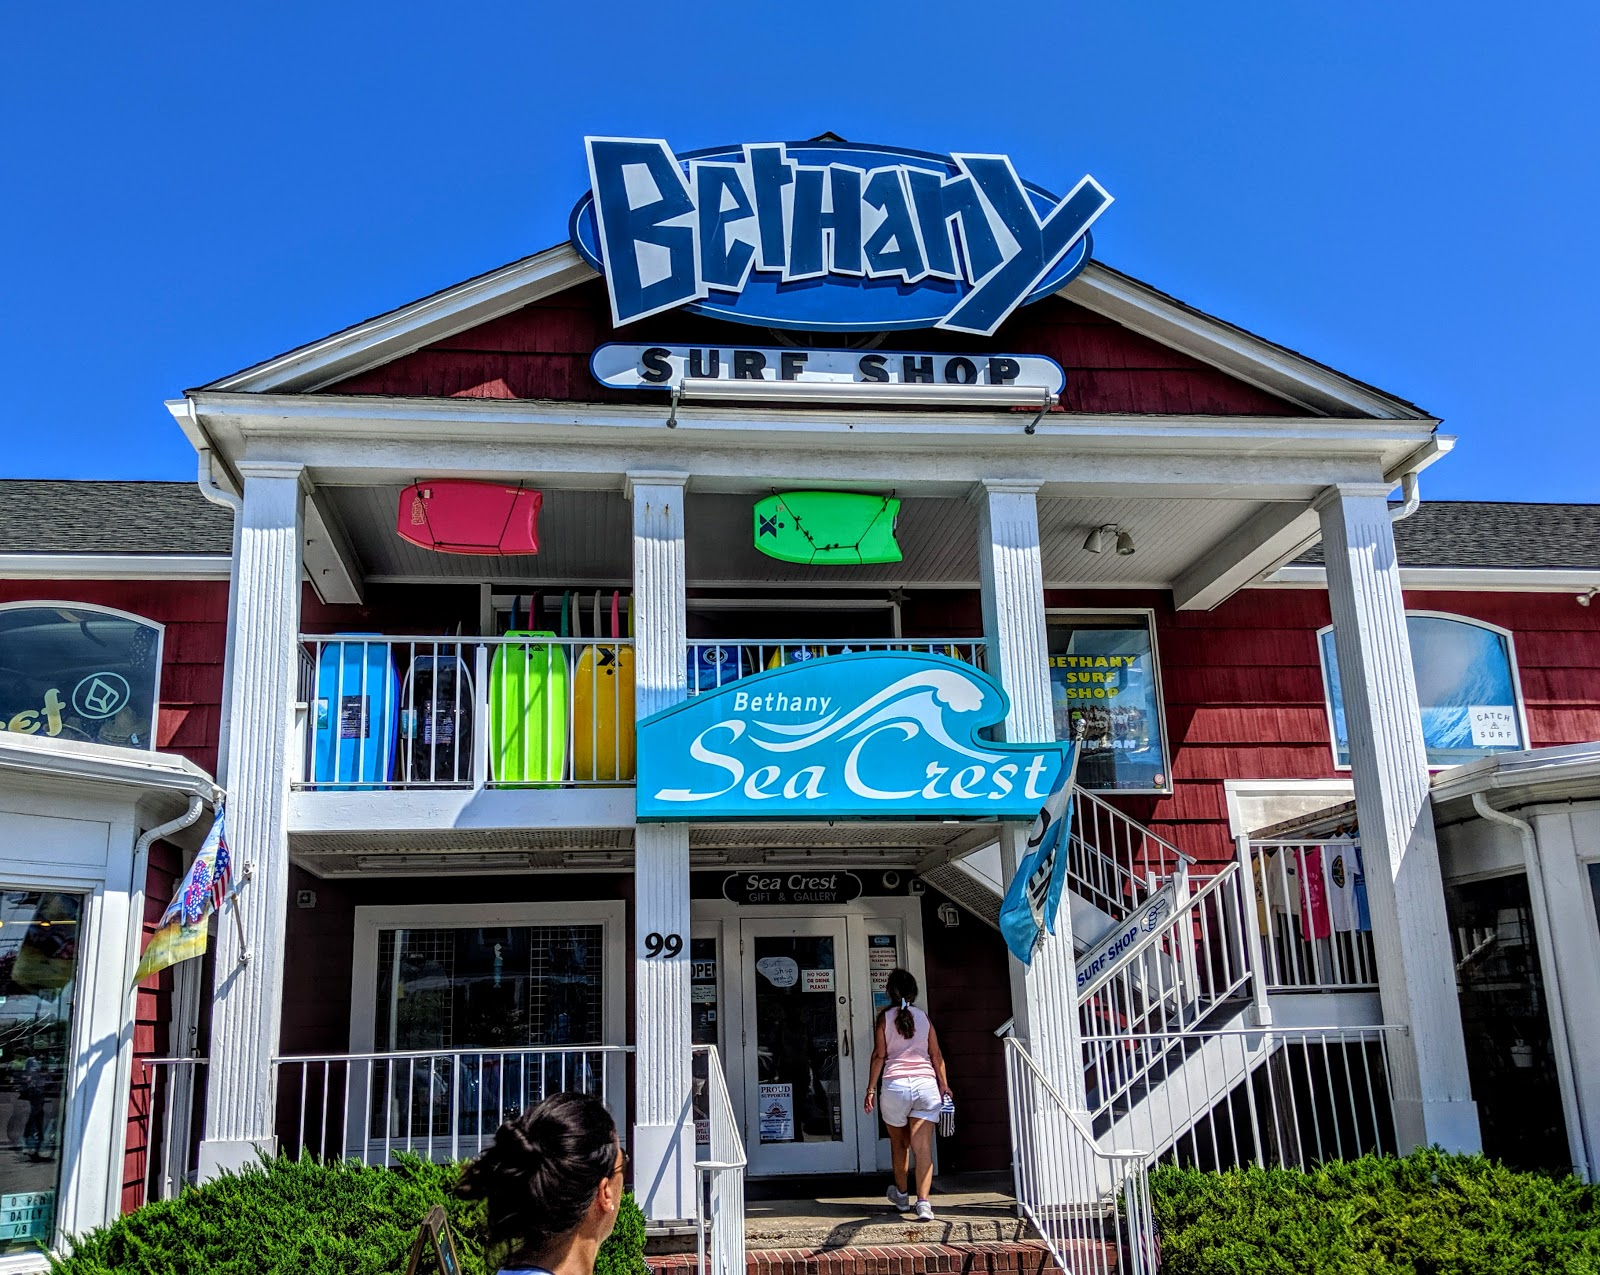 Bethany Surf Shop Front